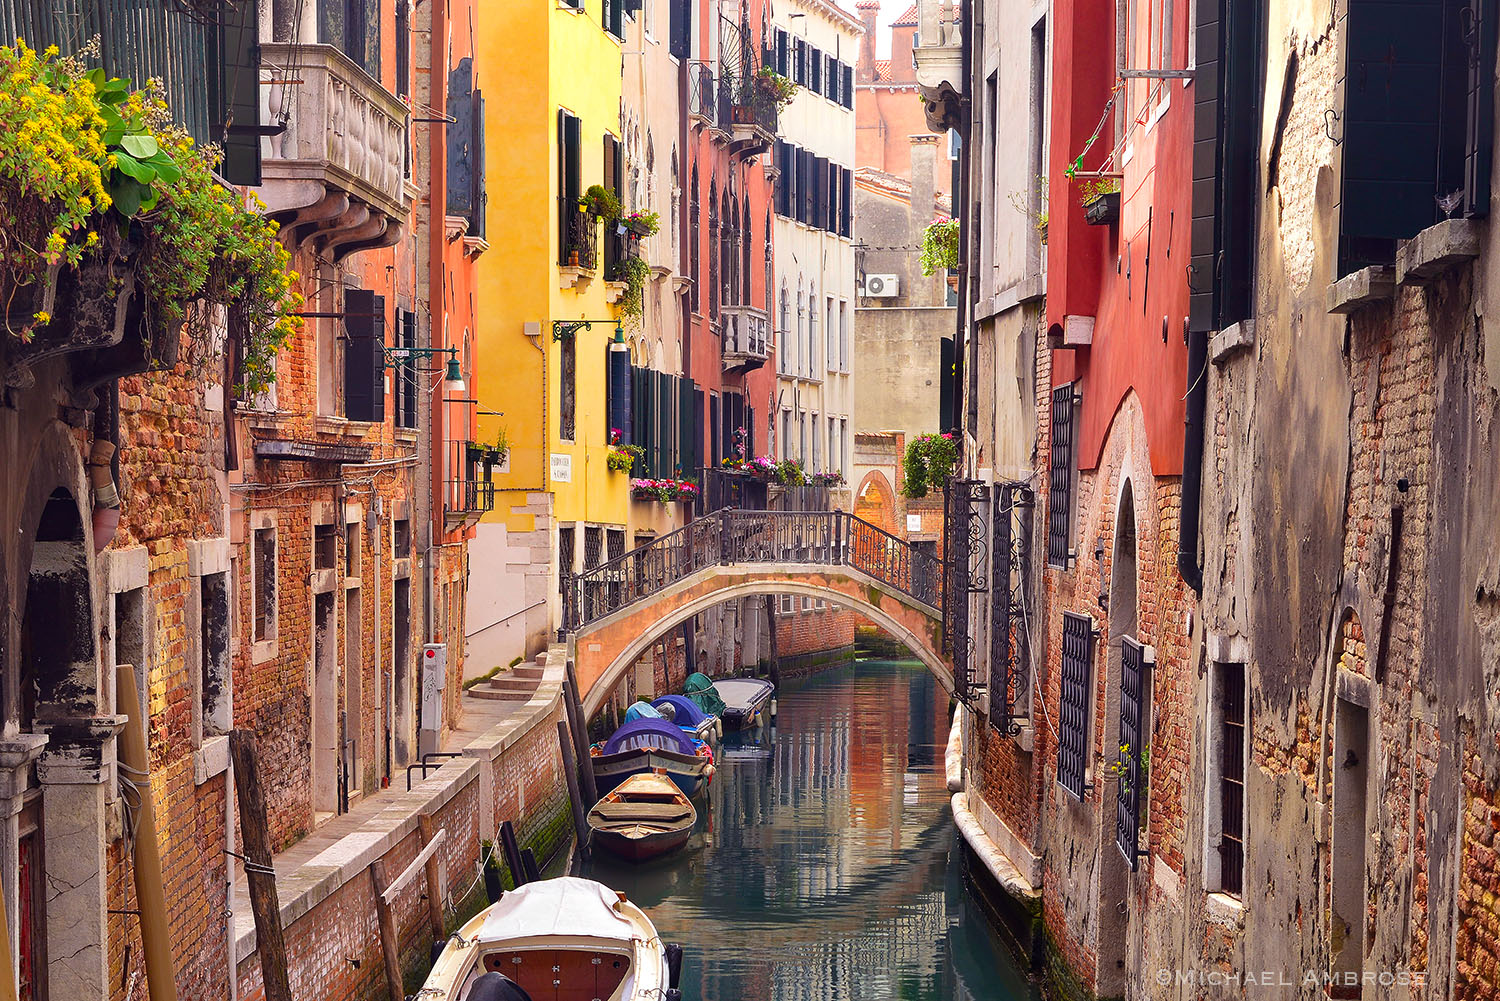 Beautifully weathered buildings and footbridges reflect in the brightly colored Venice canal.